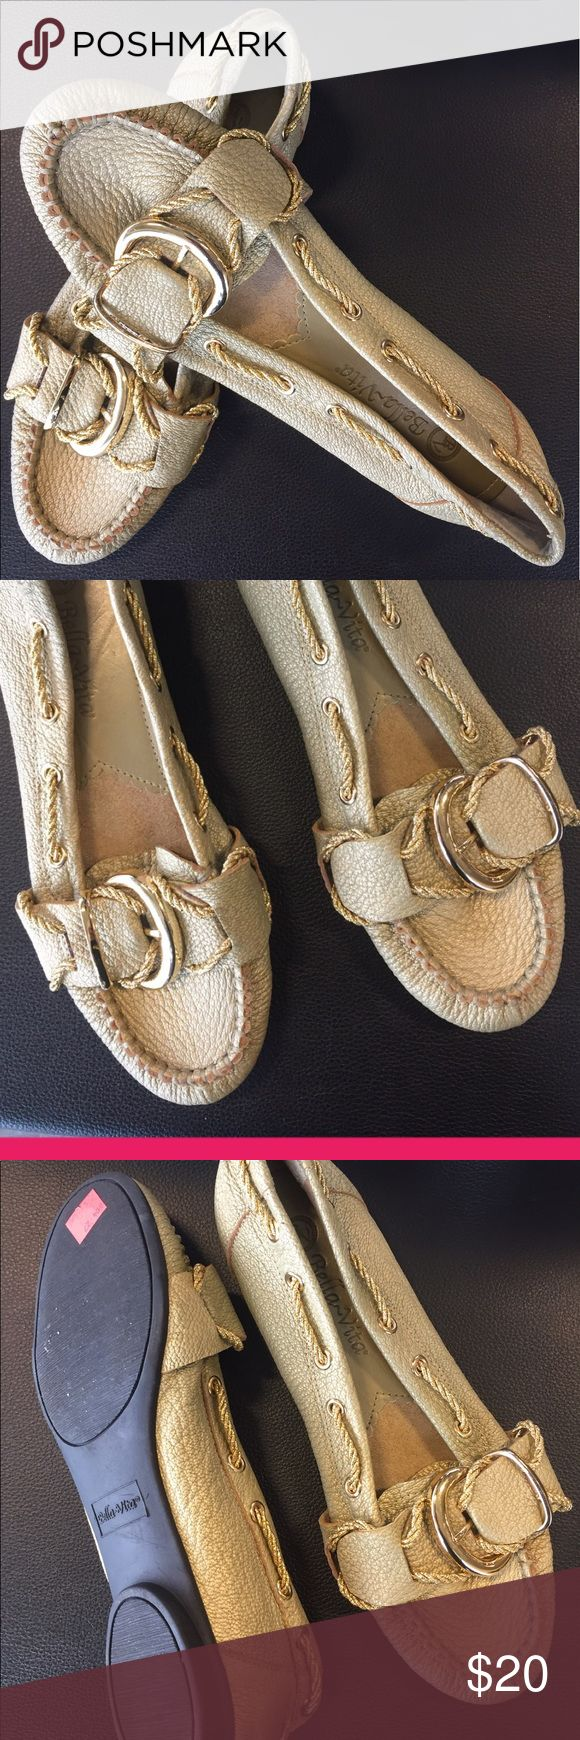 ✅$ 20 SALE✅BELLA VITA LOAFERS SIZE 7✅ ✅$ 20 SALE✅BELLA VITA LOAFERS SIZE 7✅WITH RUBBER SOLES FIR EXTRA COMFORT. WORN ONCE COLOR: GOLD TONE BELLA VITA Shoes Flats & Loafers